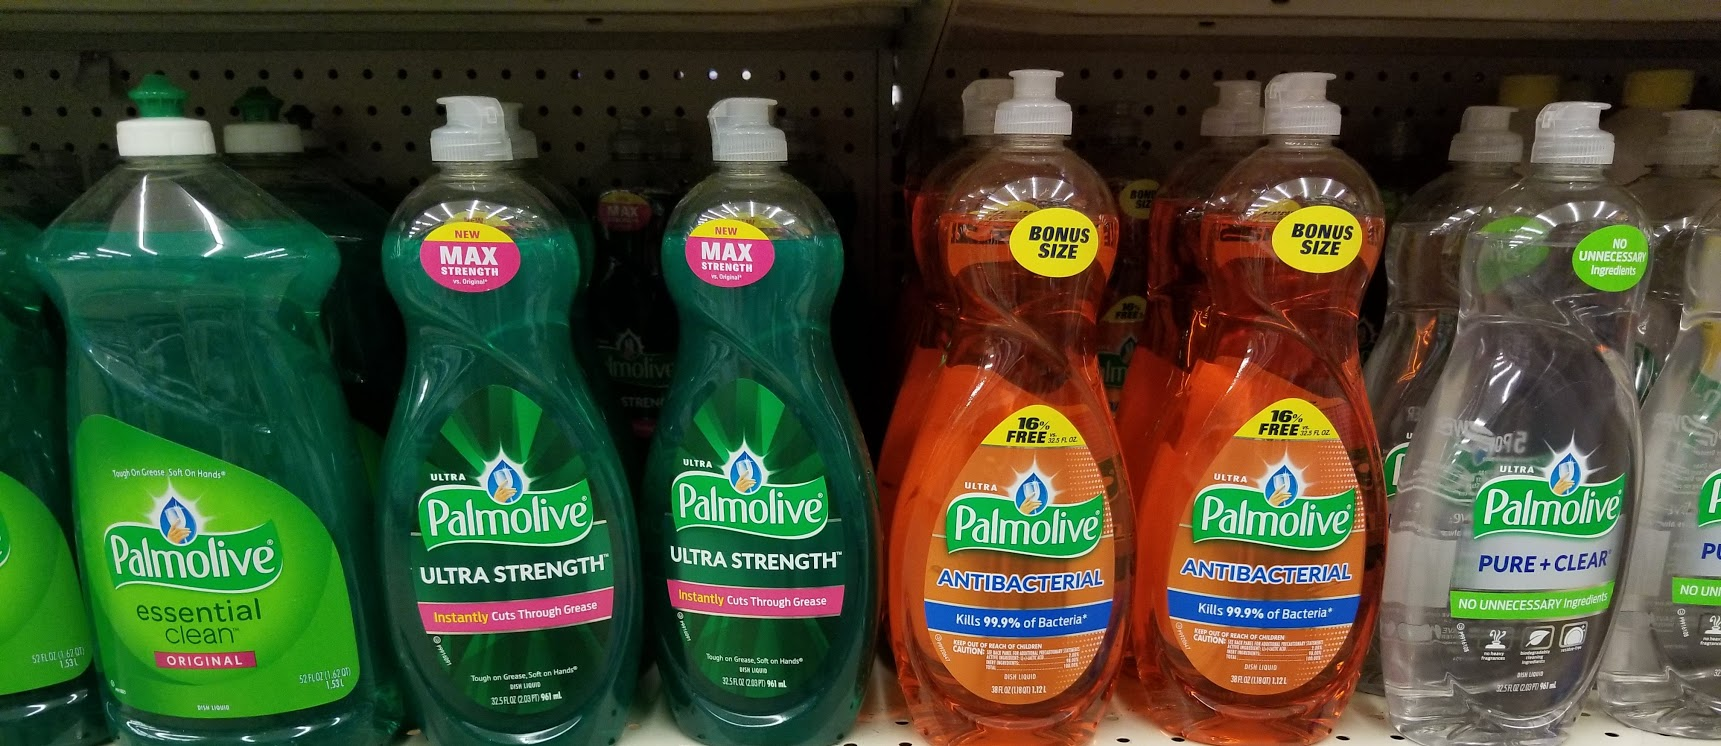 Snag Palmolive Dish Soap for $0.88 at Walgreens! Digital Deal!!